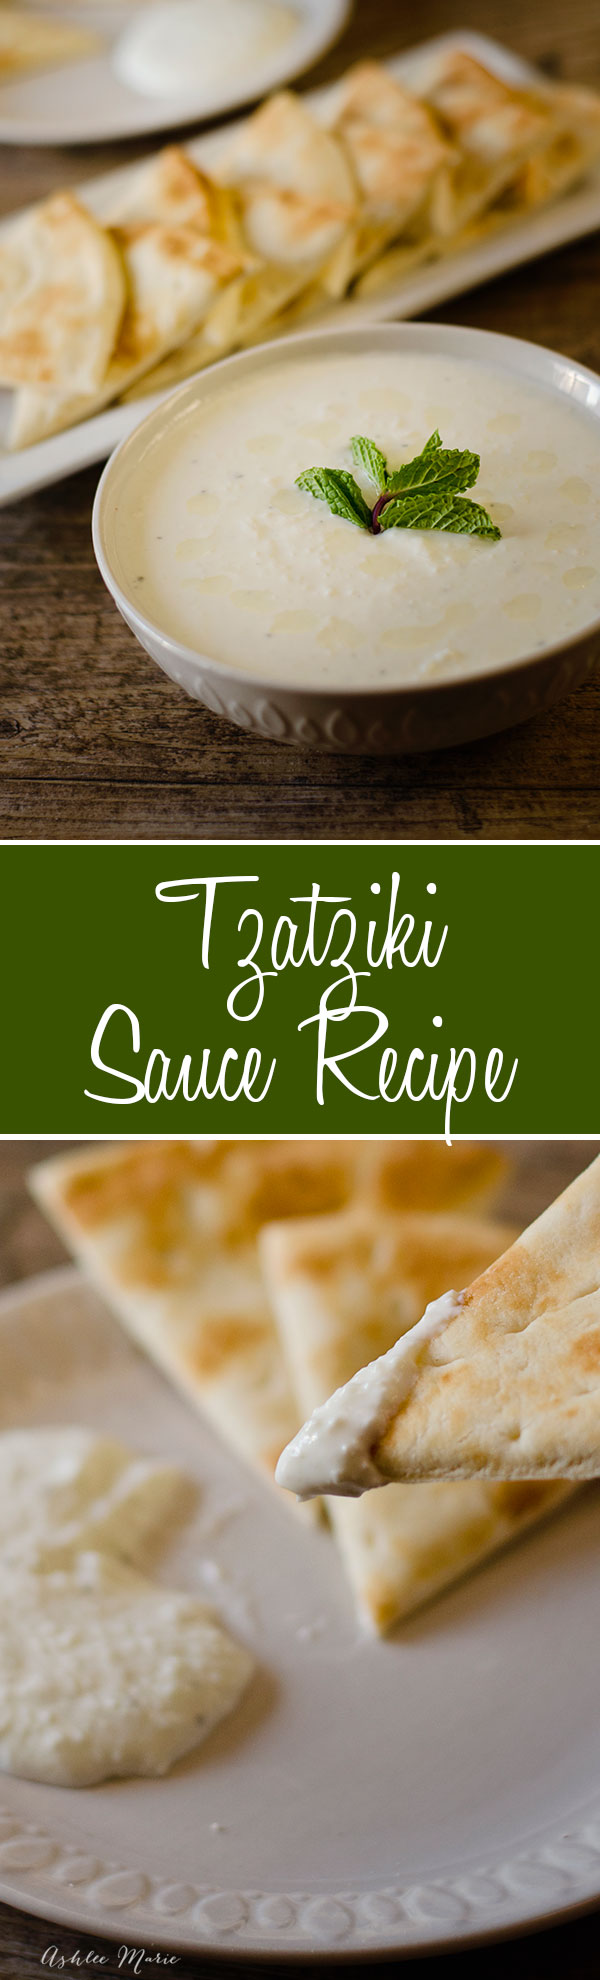 I love Greek food, and a staple in good greek food is an amazing Tzaziki sauce recipe. This one is it, i make it all the time to go with homemade gyro or just to enjoy with pita bread